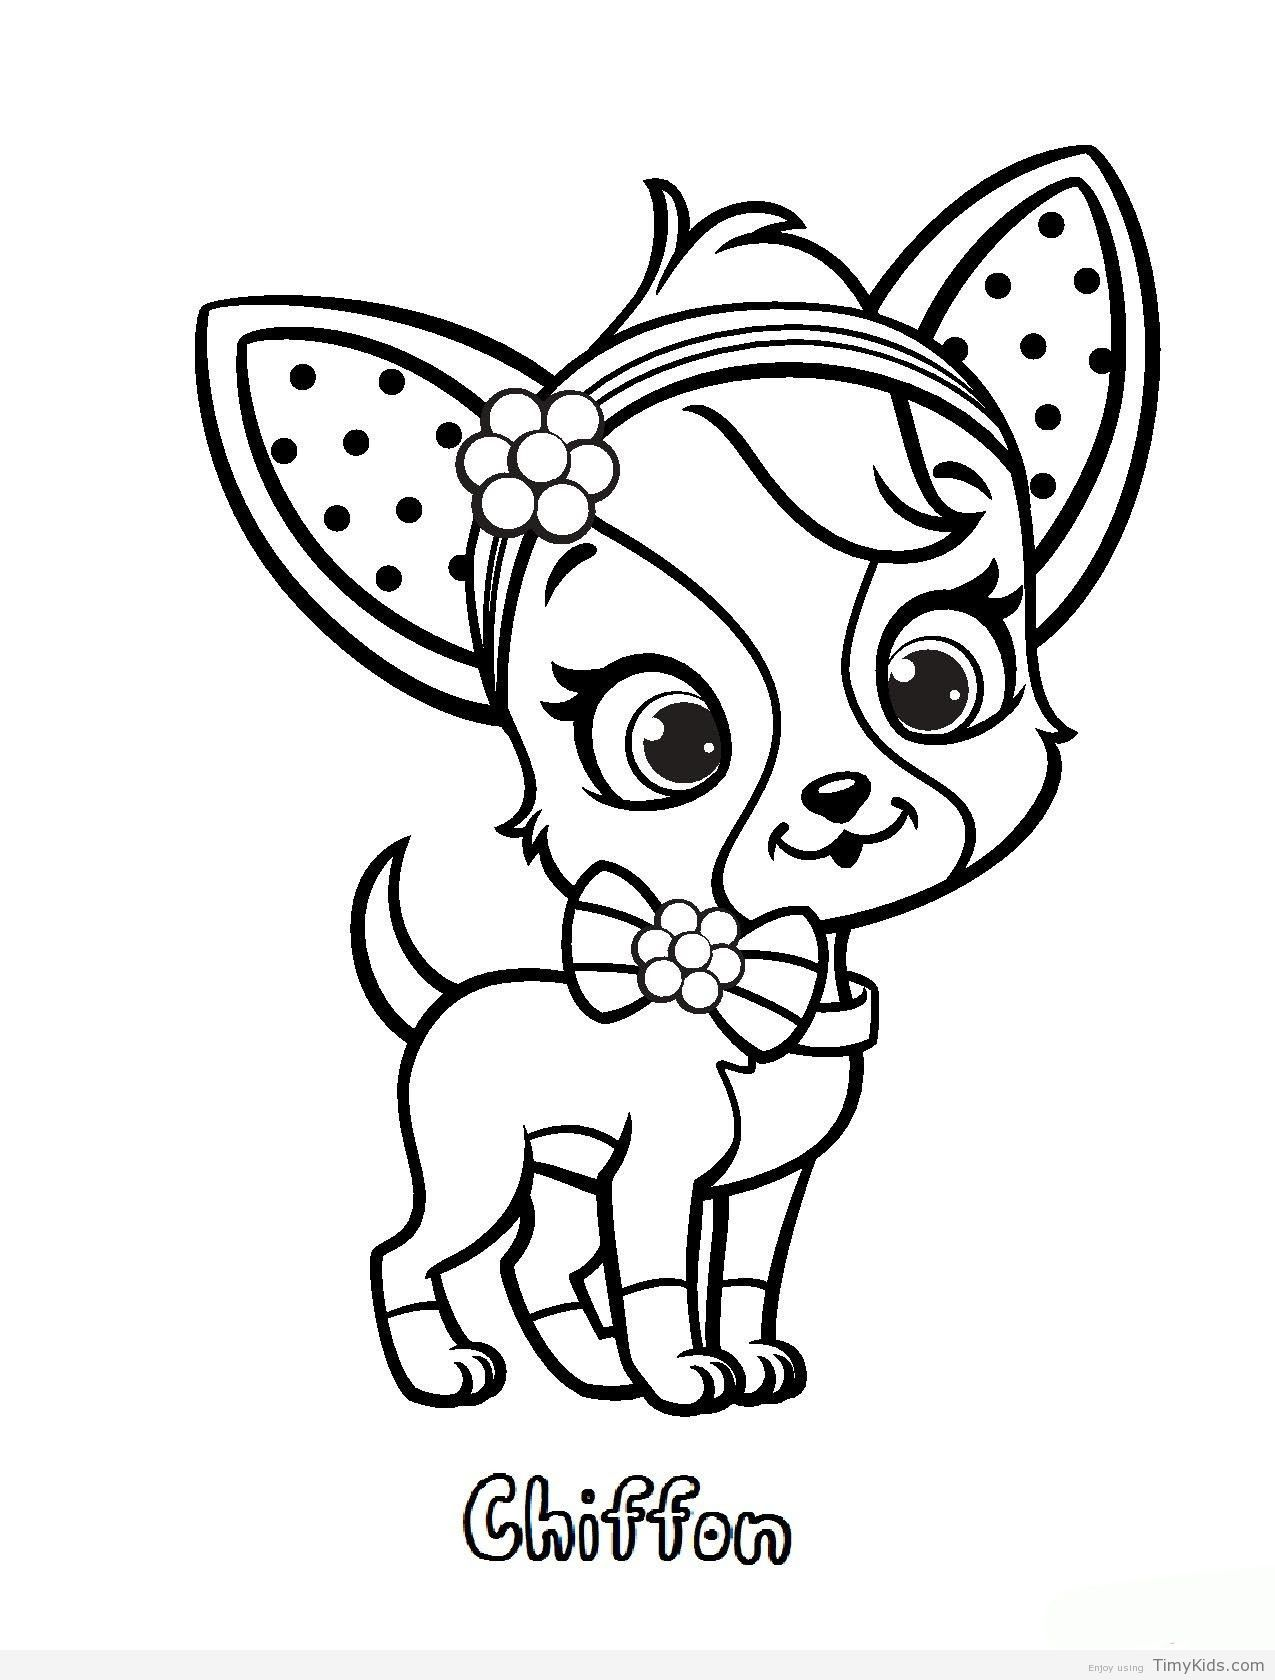 http://timykids.com/strawberry-shortcake-pets-coloring-pages.html ...